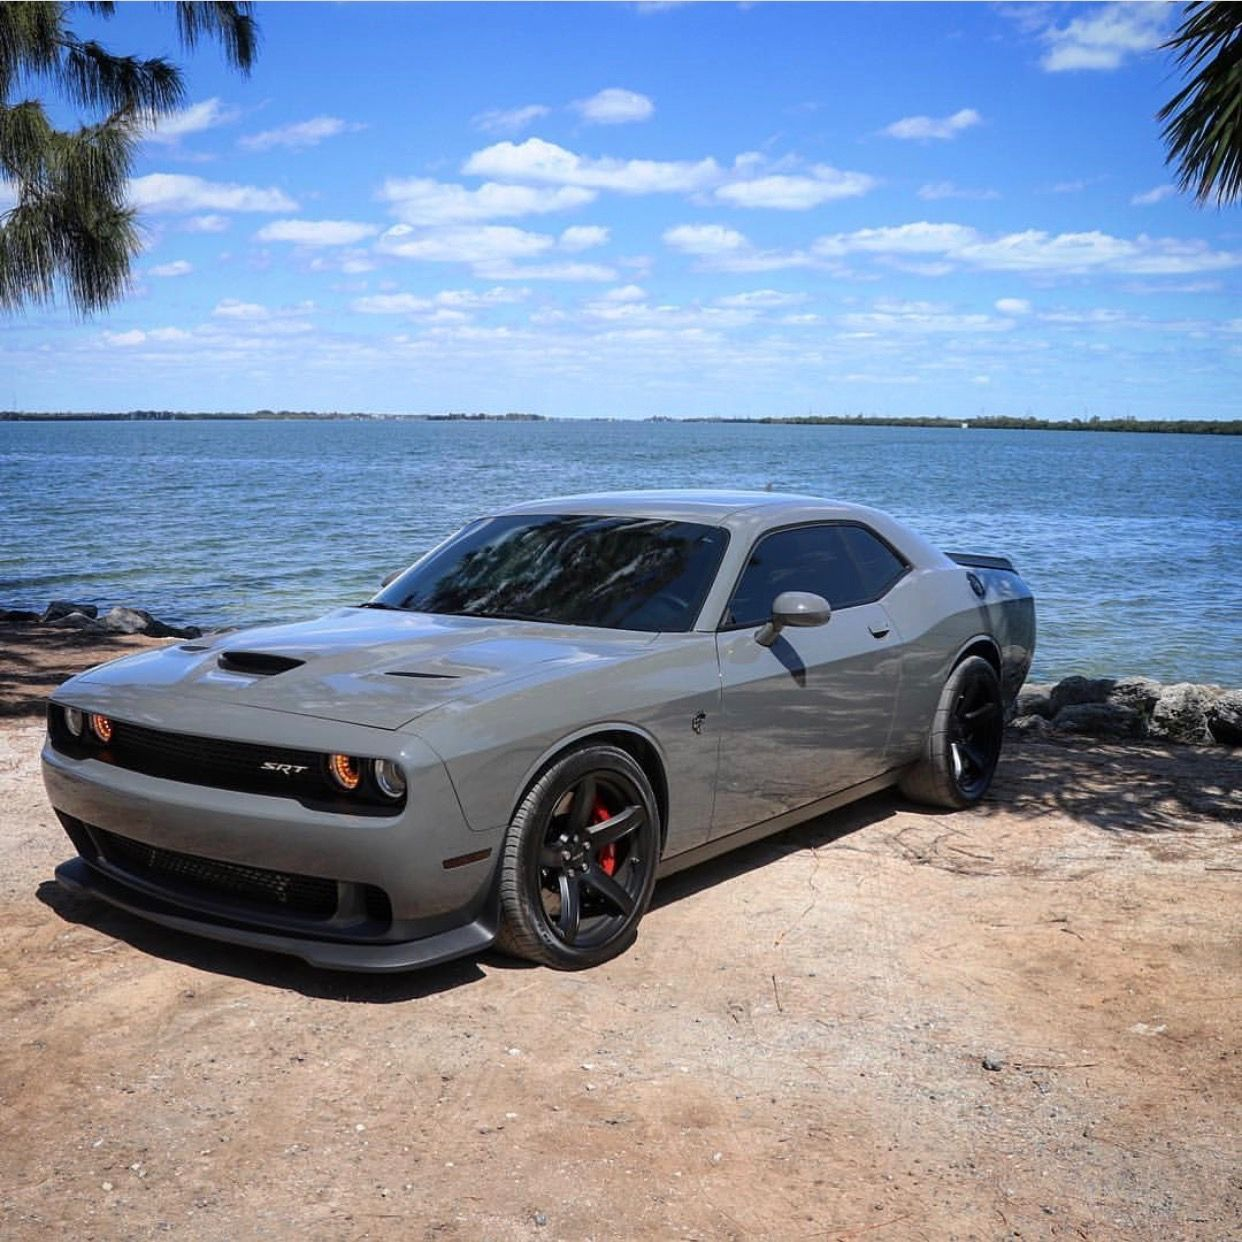 Dodge Challenger Malaysia Price >> [widebody hellcat destroyer grey] - 28 images - for sale challenger hellcat autos post, 2018 ...